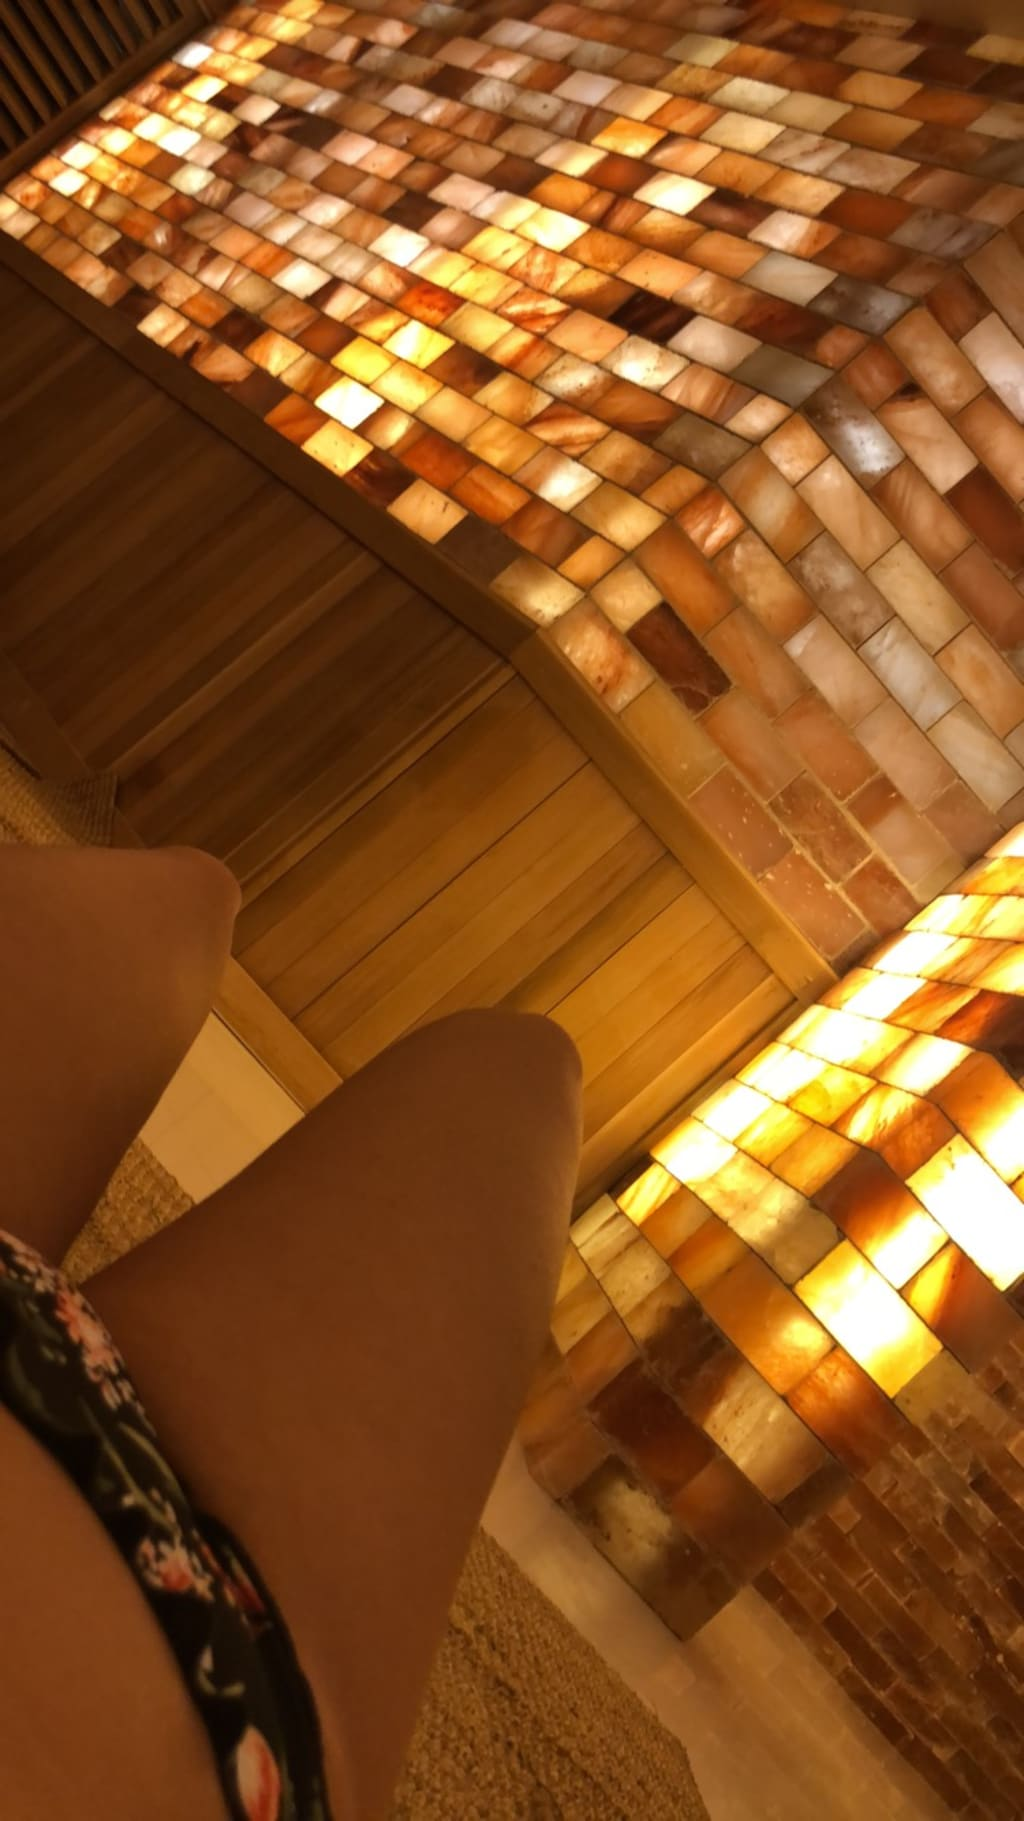 SoJo Spa Club: My Experience and Why You Need to Go There